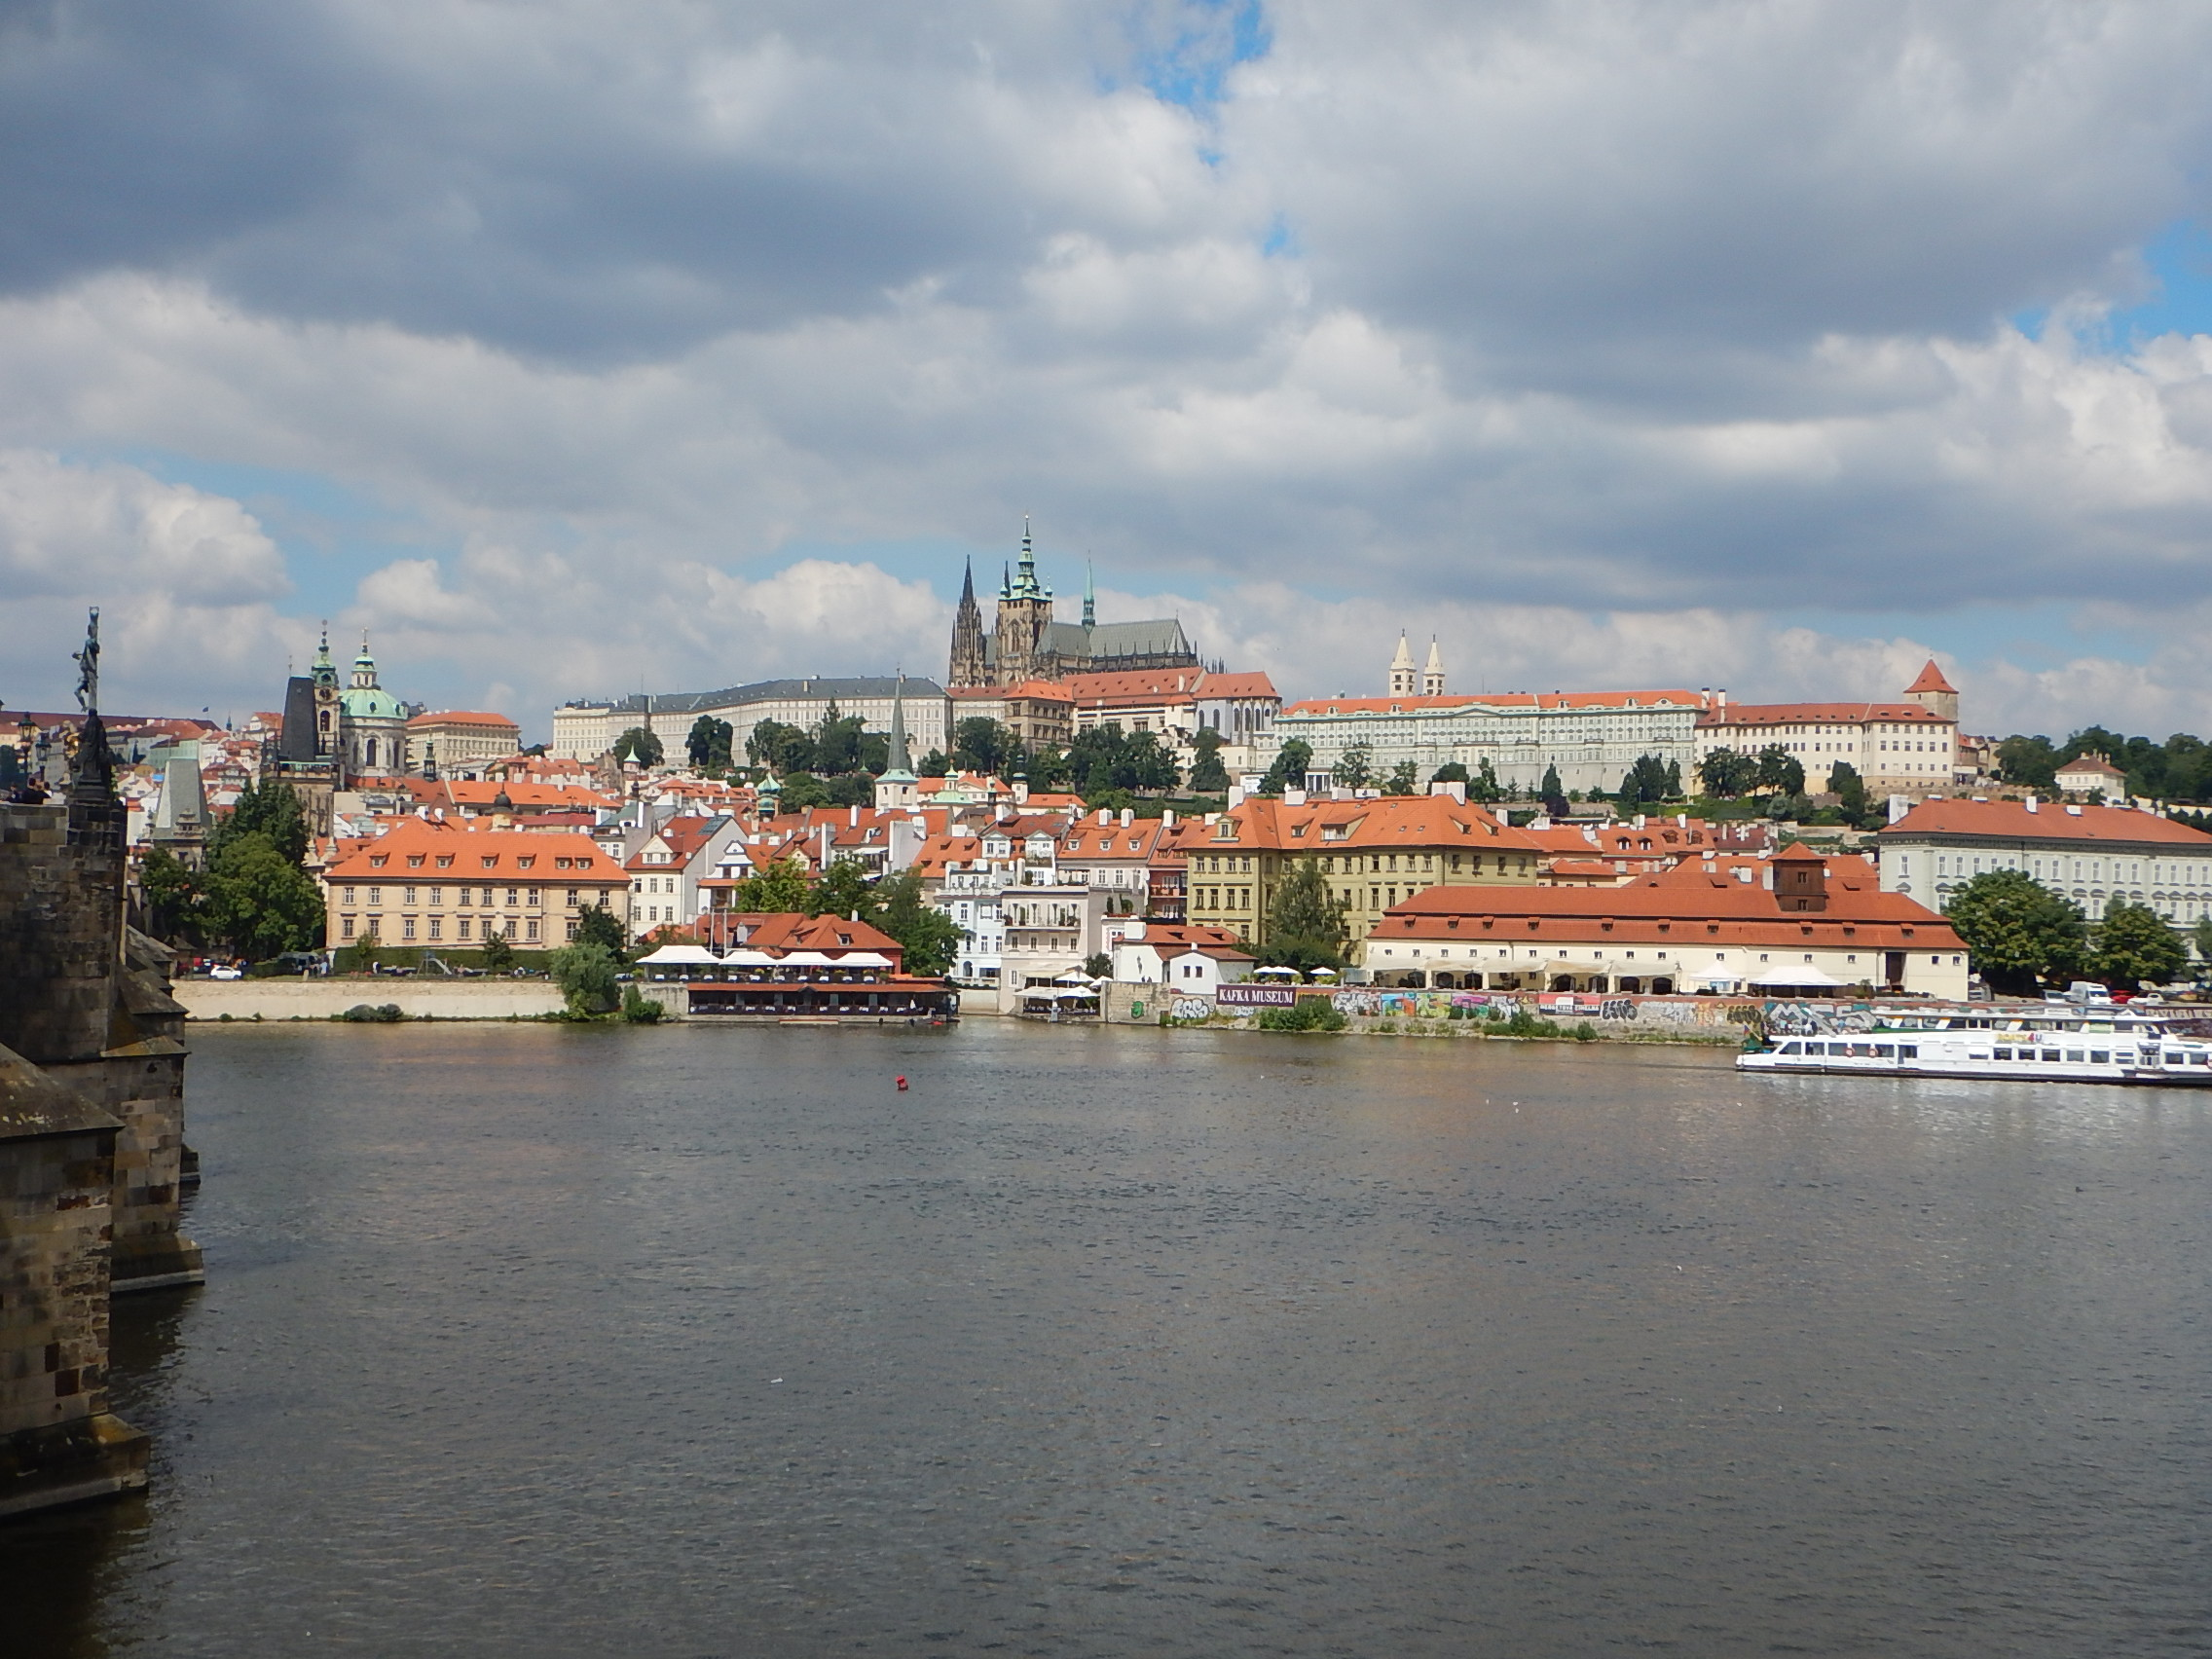 Review Adventures Disney - Central Europe (Czech Republic, Austria and Germany)